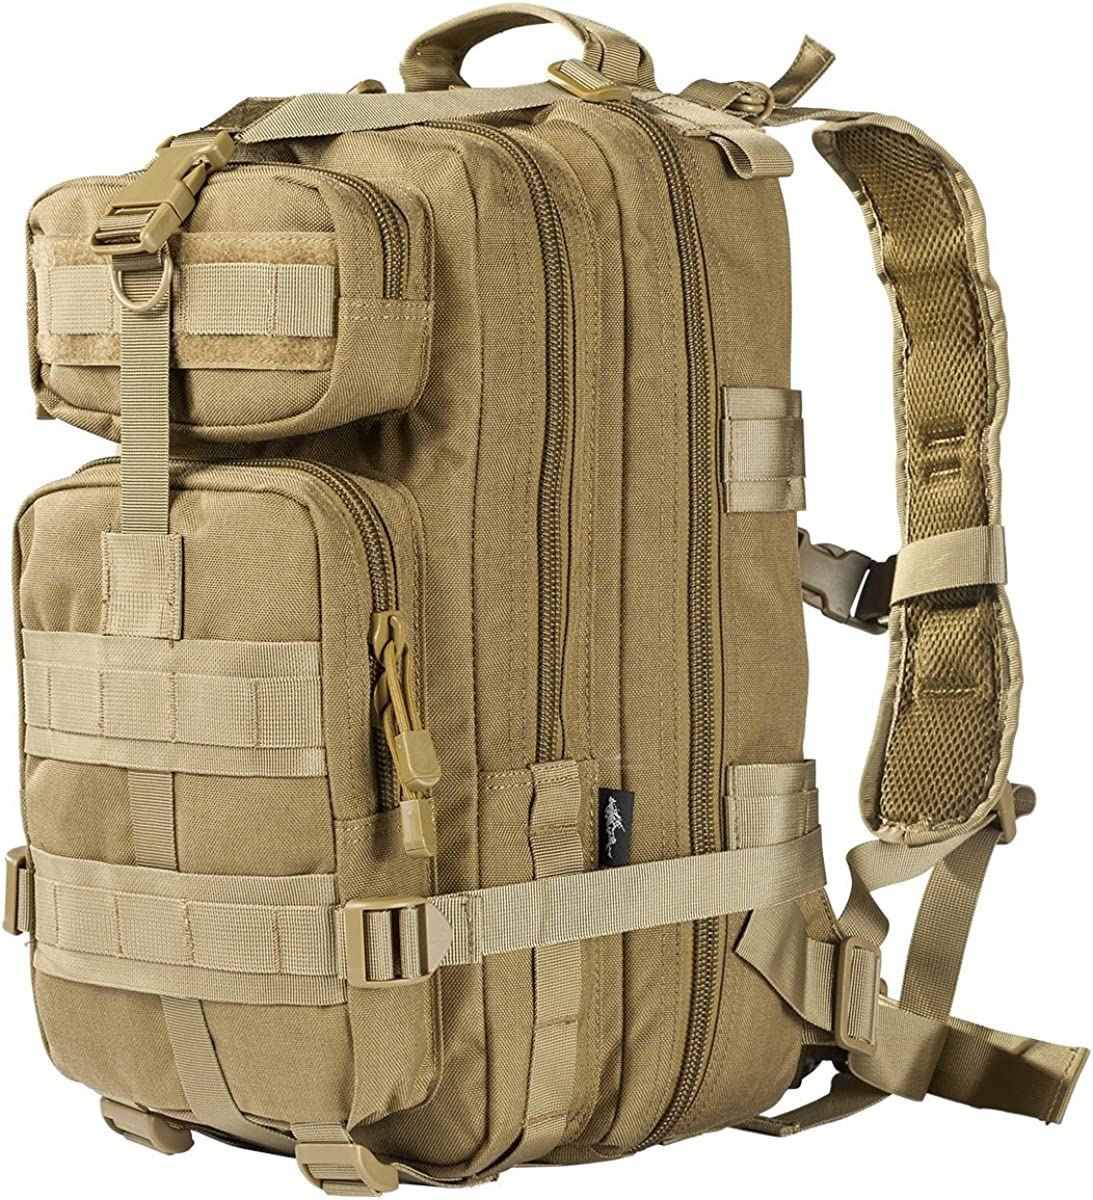 FREE SOLDIER Tactical Backpack Military Rucksacks Molle Army Bug Assault Pack Backpack Waterproof Backpacks Coyote 45L